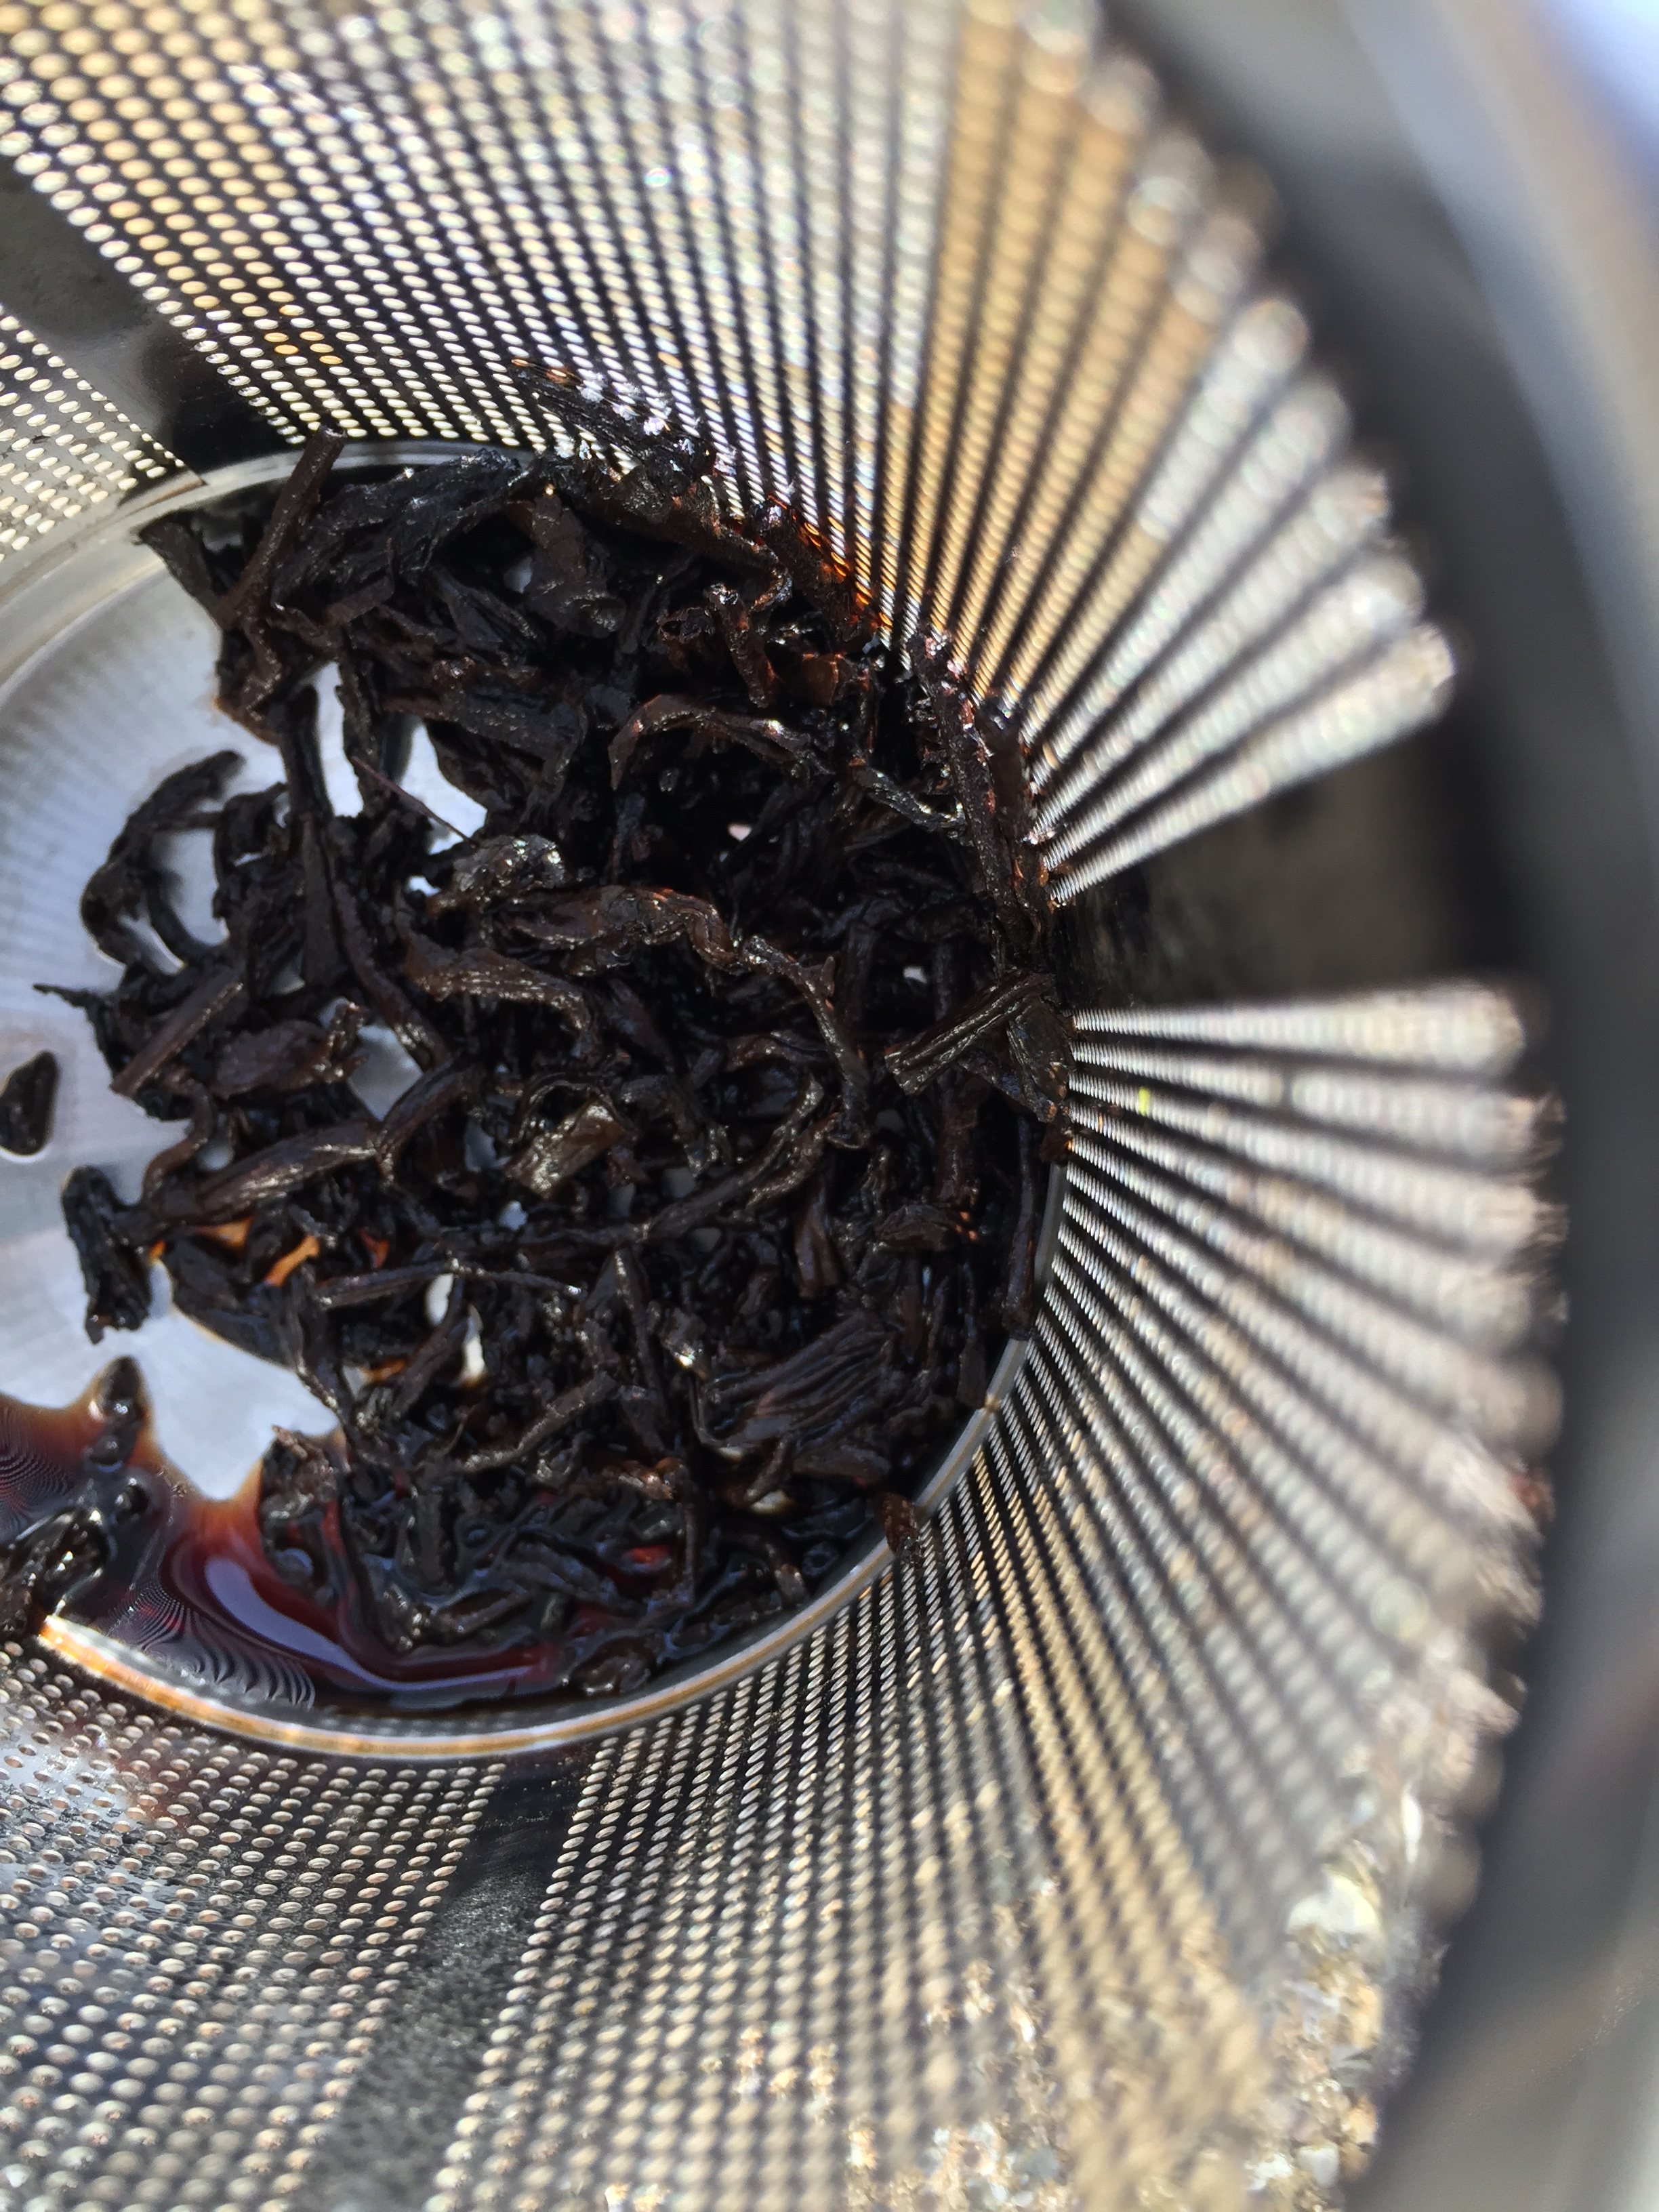 Photograph of China Aged Pu-Erh Celestial Tribute (Upton) ~ spent by Jocilyn Mors is licensed under a Creative Commons Attribution-NonCommercial-ShareAlike 4.0 International License.